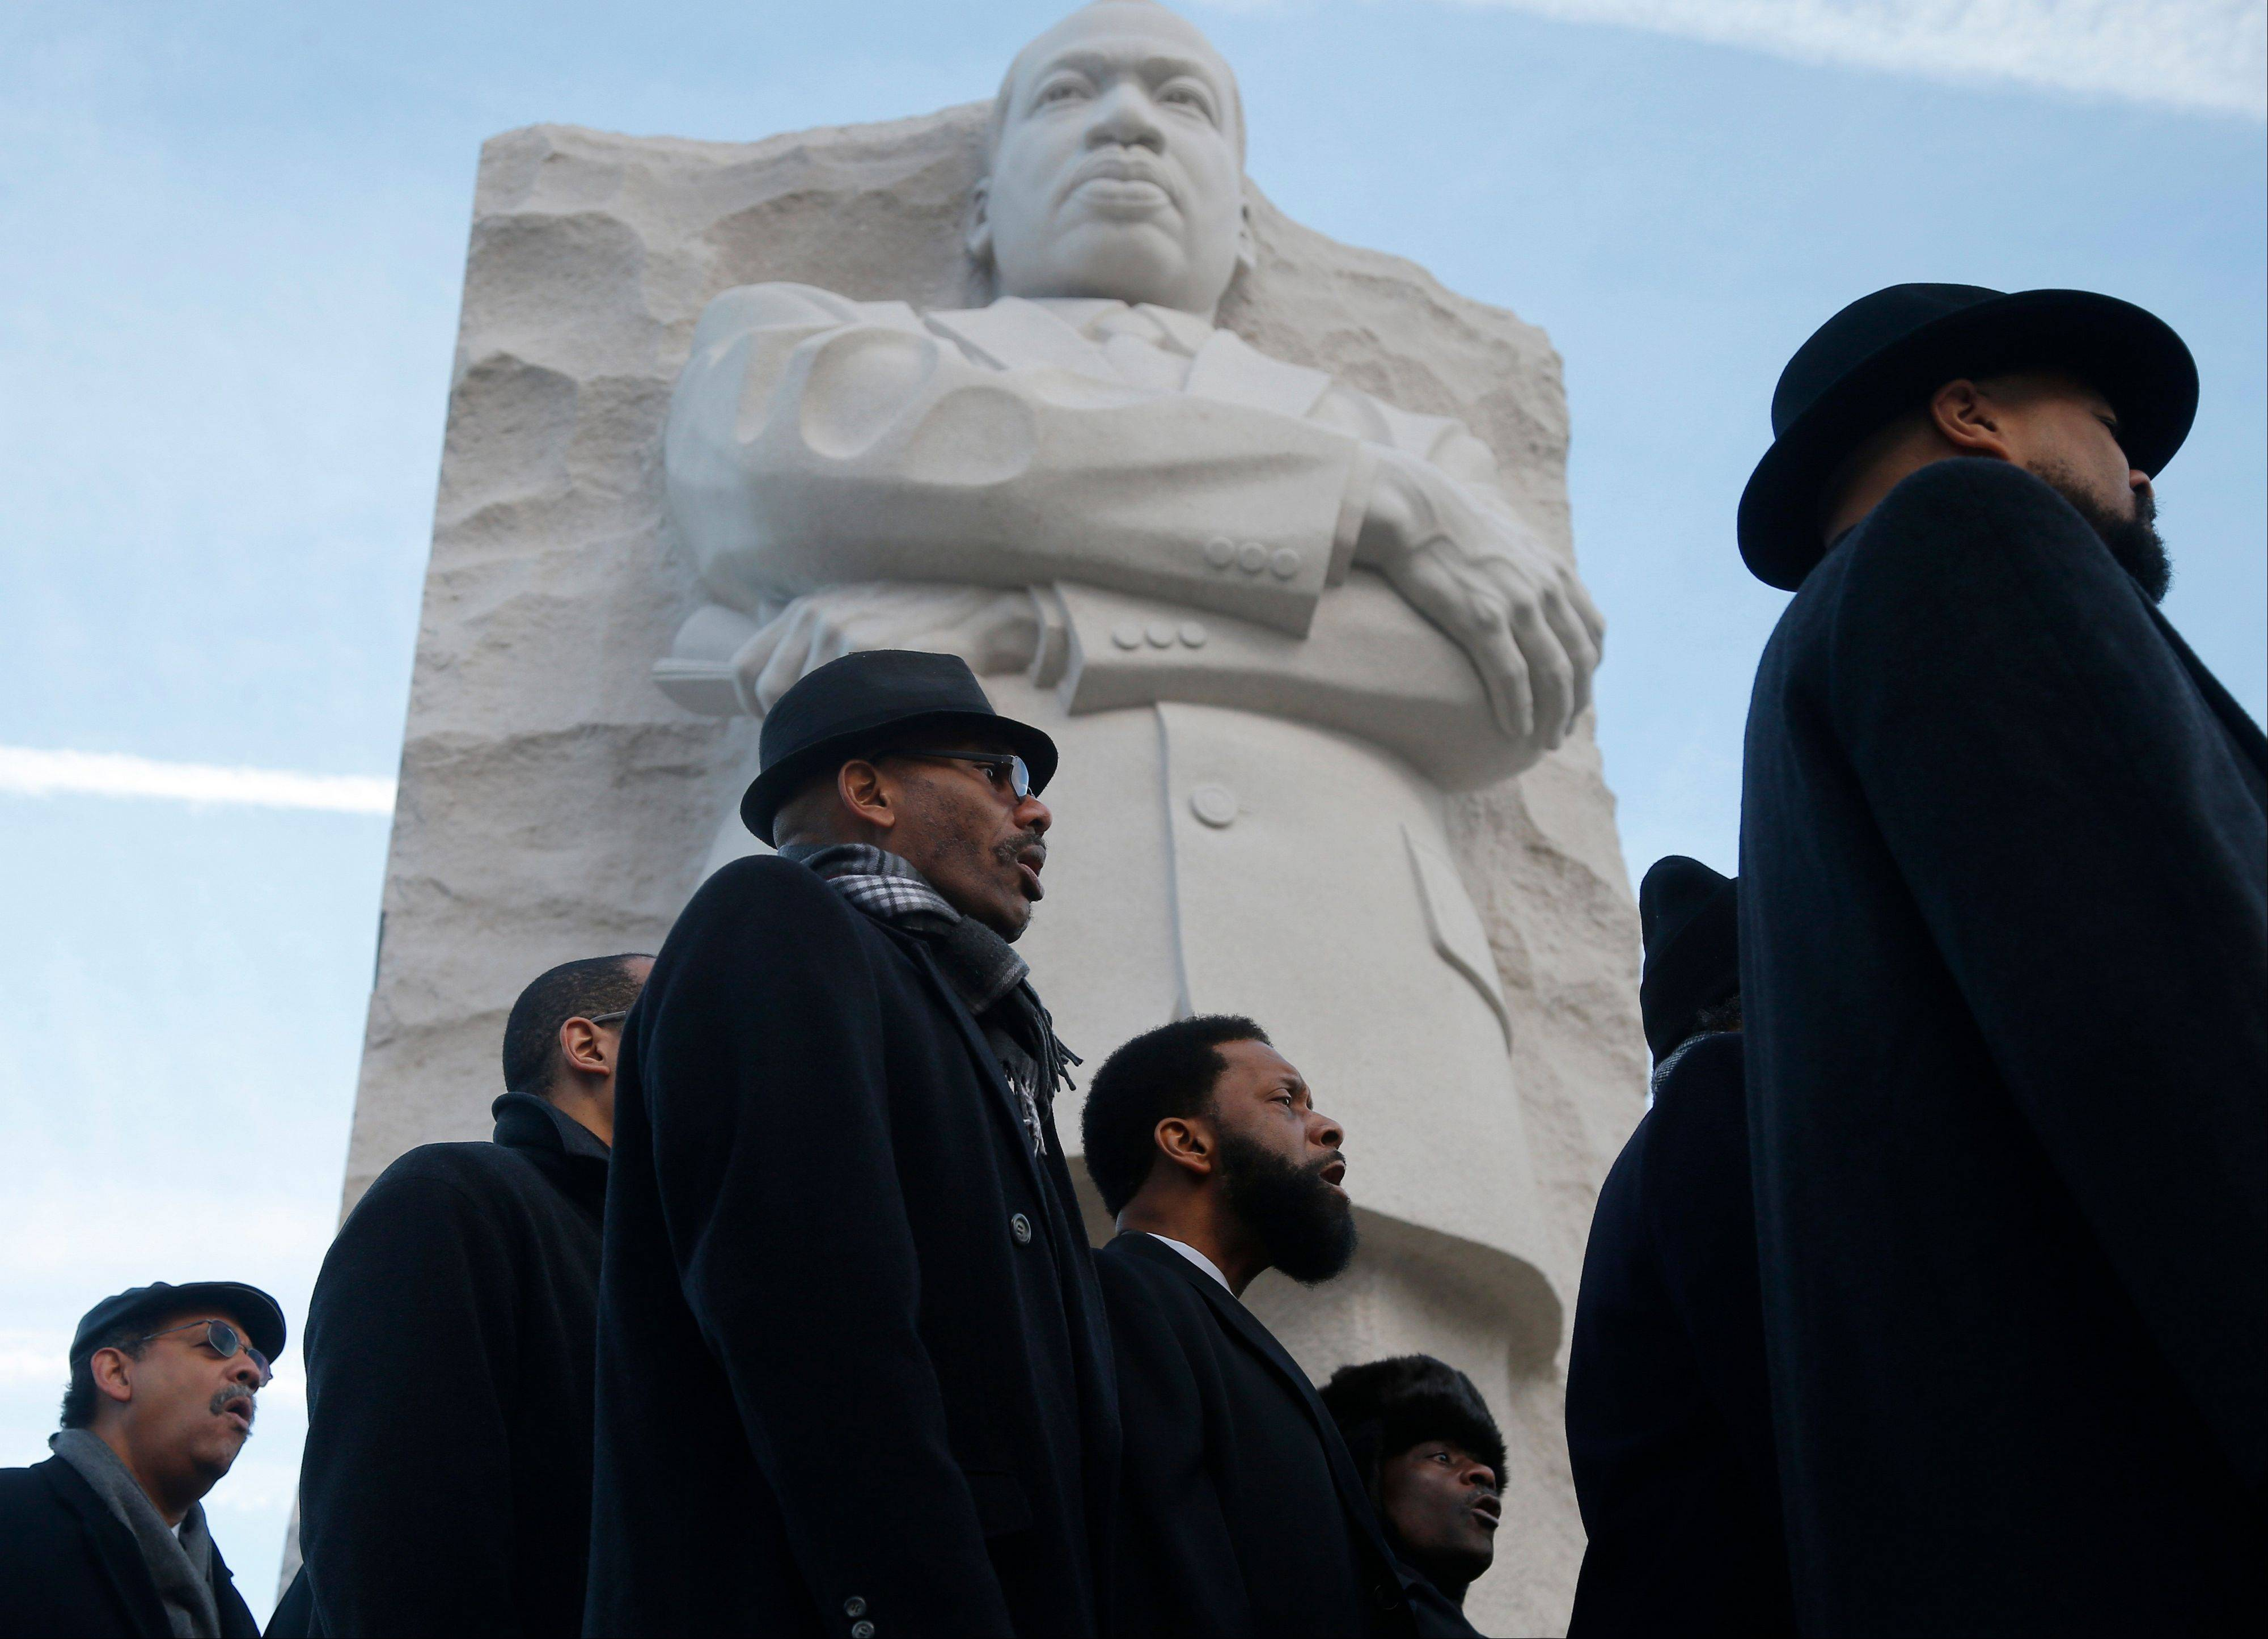 The men's choir from the People's Community Baptist Church in Silver Spring, Md., sing at the Martin Luther King Jr. Memorial in Washington, Monday, Jan. 20, 2014. The nation paused to remember Martin Luther King Jr. Monday with parades, marches and service projects. King was born Jan. 15, 1929, and the federal holiday is the third Monday in January.